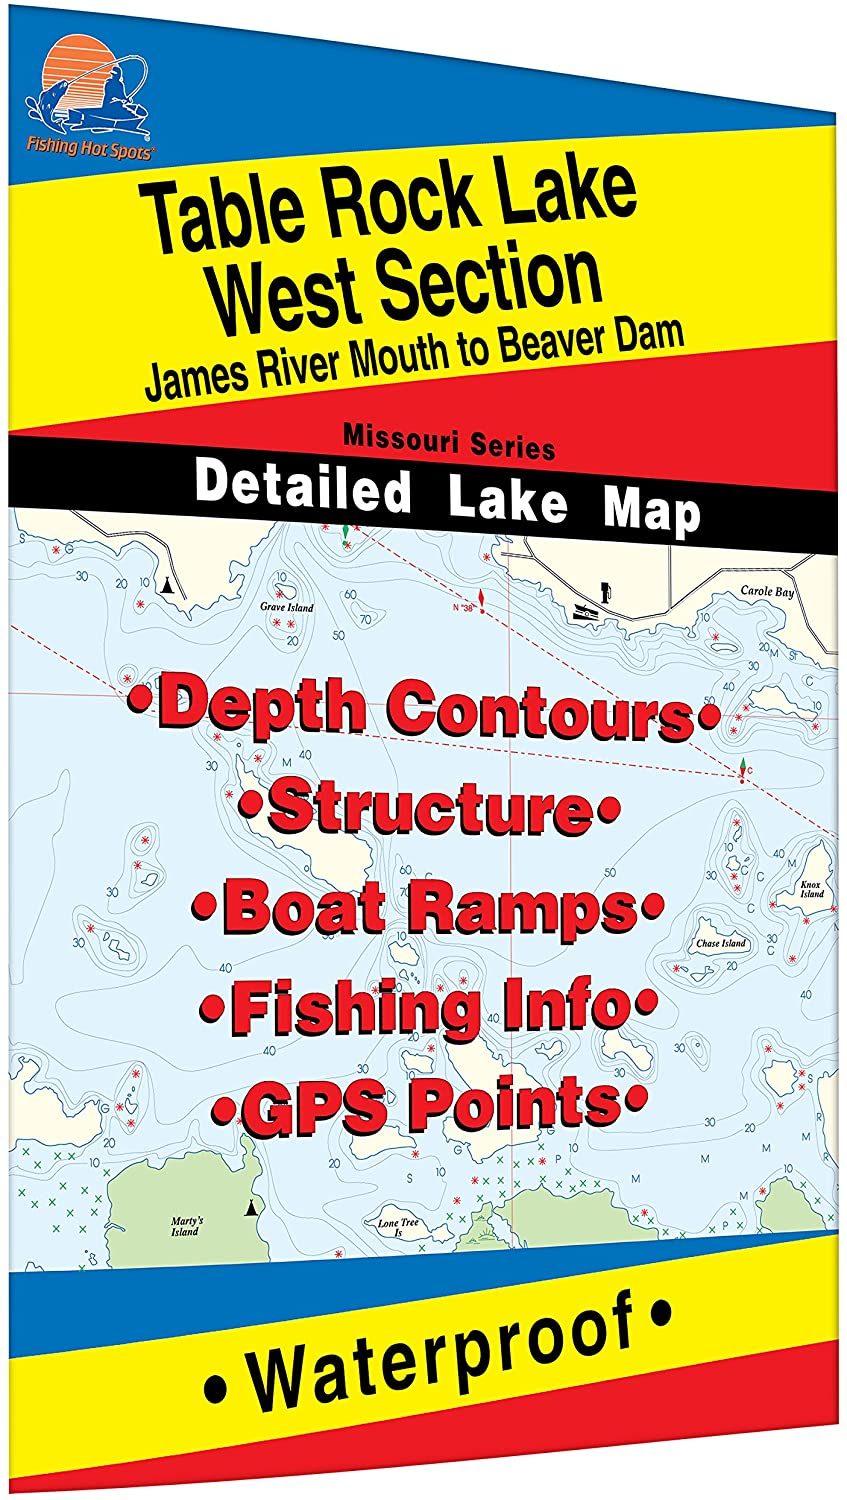 Table Rock Lake-West (James River Mouth to Beaver Dam) Fishing Map